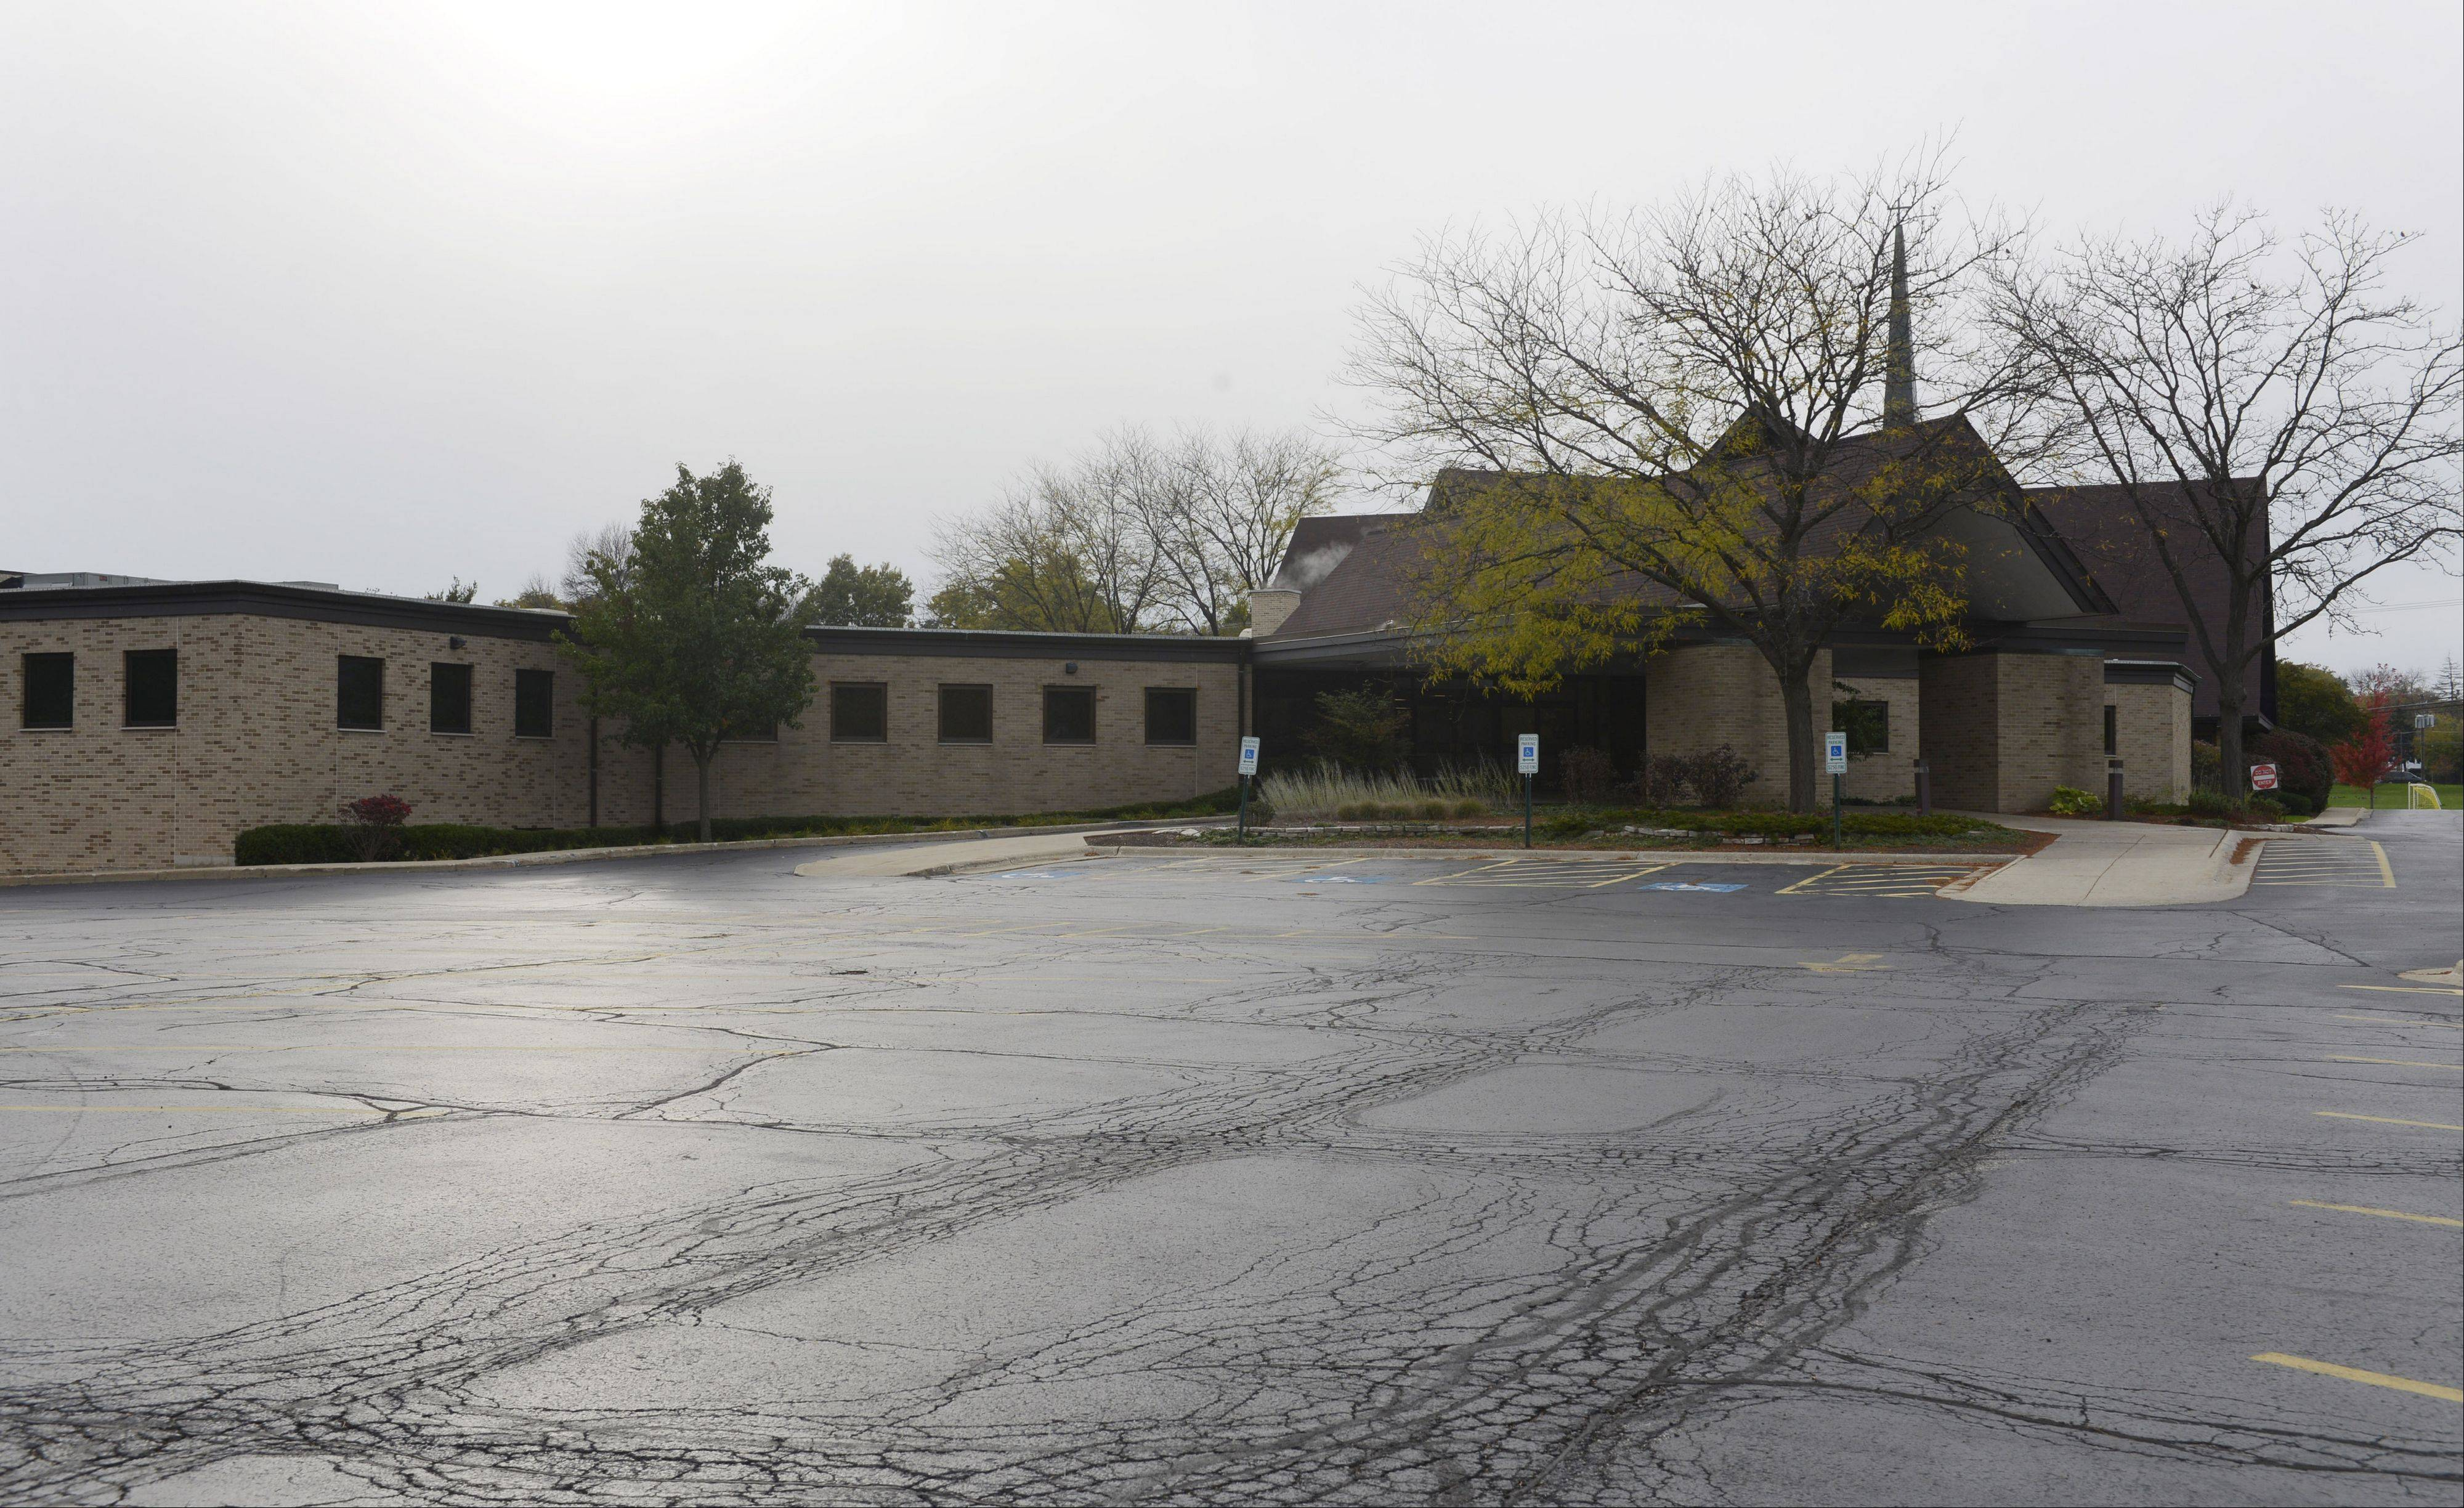 Arlington Heights Elementary School District 25 and Orchard Evangelical Free Church have reached a 10-year agreement to allow the church to use the parking lots of Olive-Mary Stitt Elementary and Thomas Middle schools to help alleviate the church's parking issues.